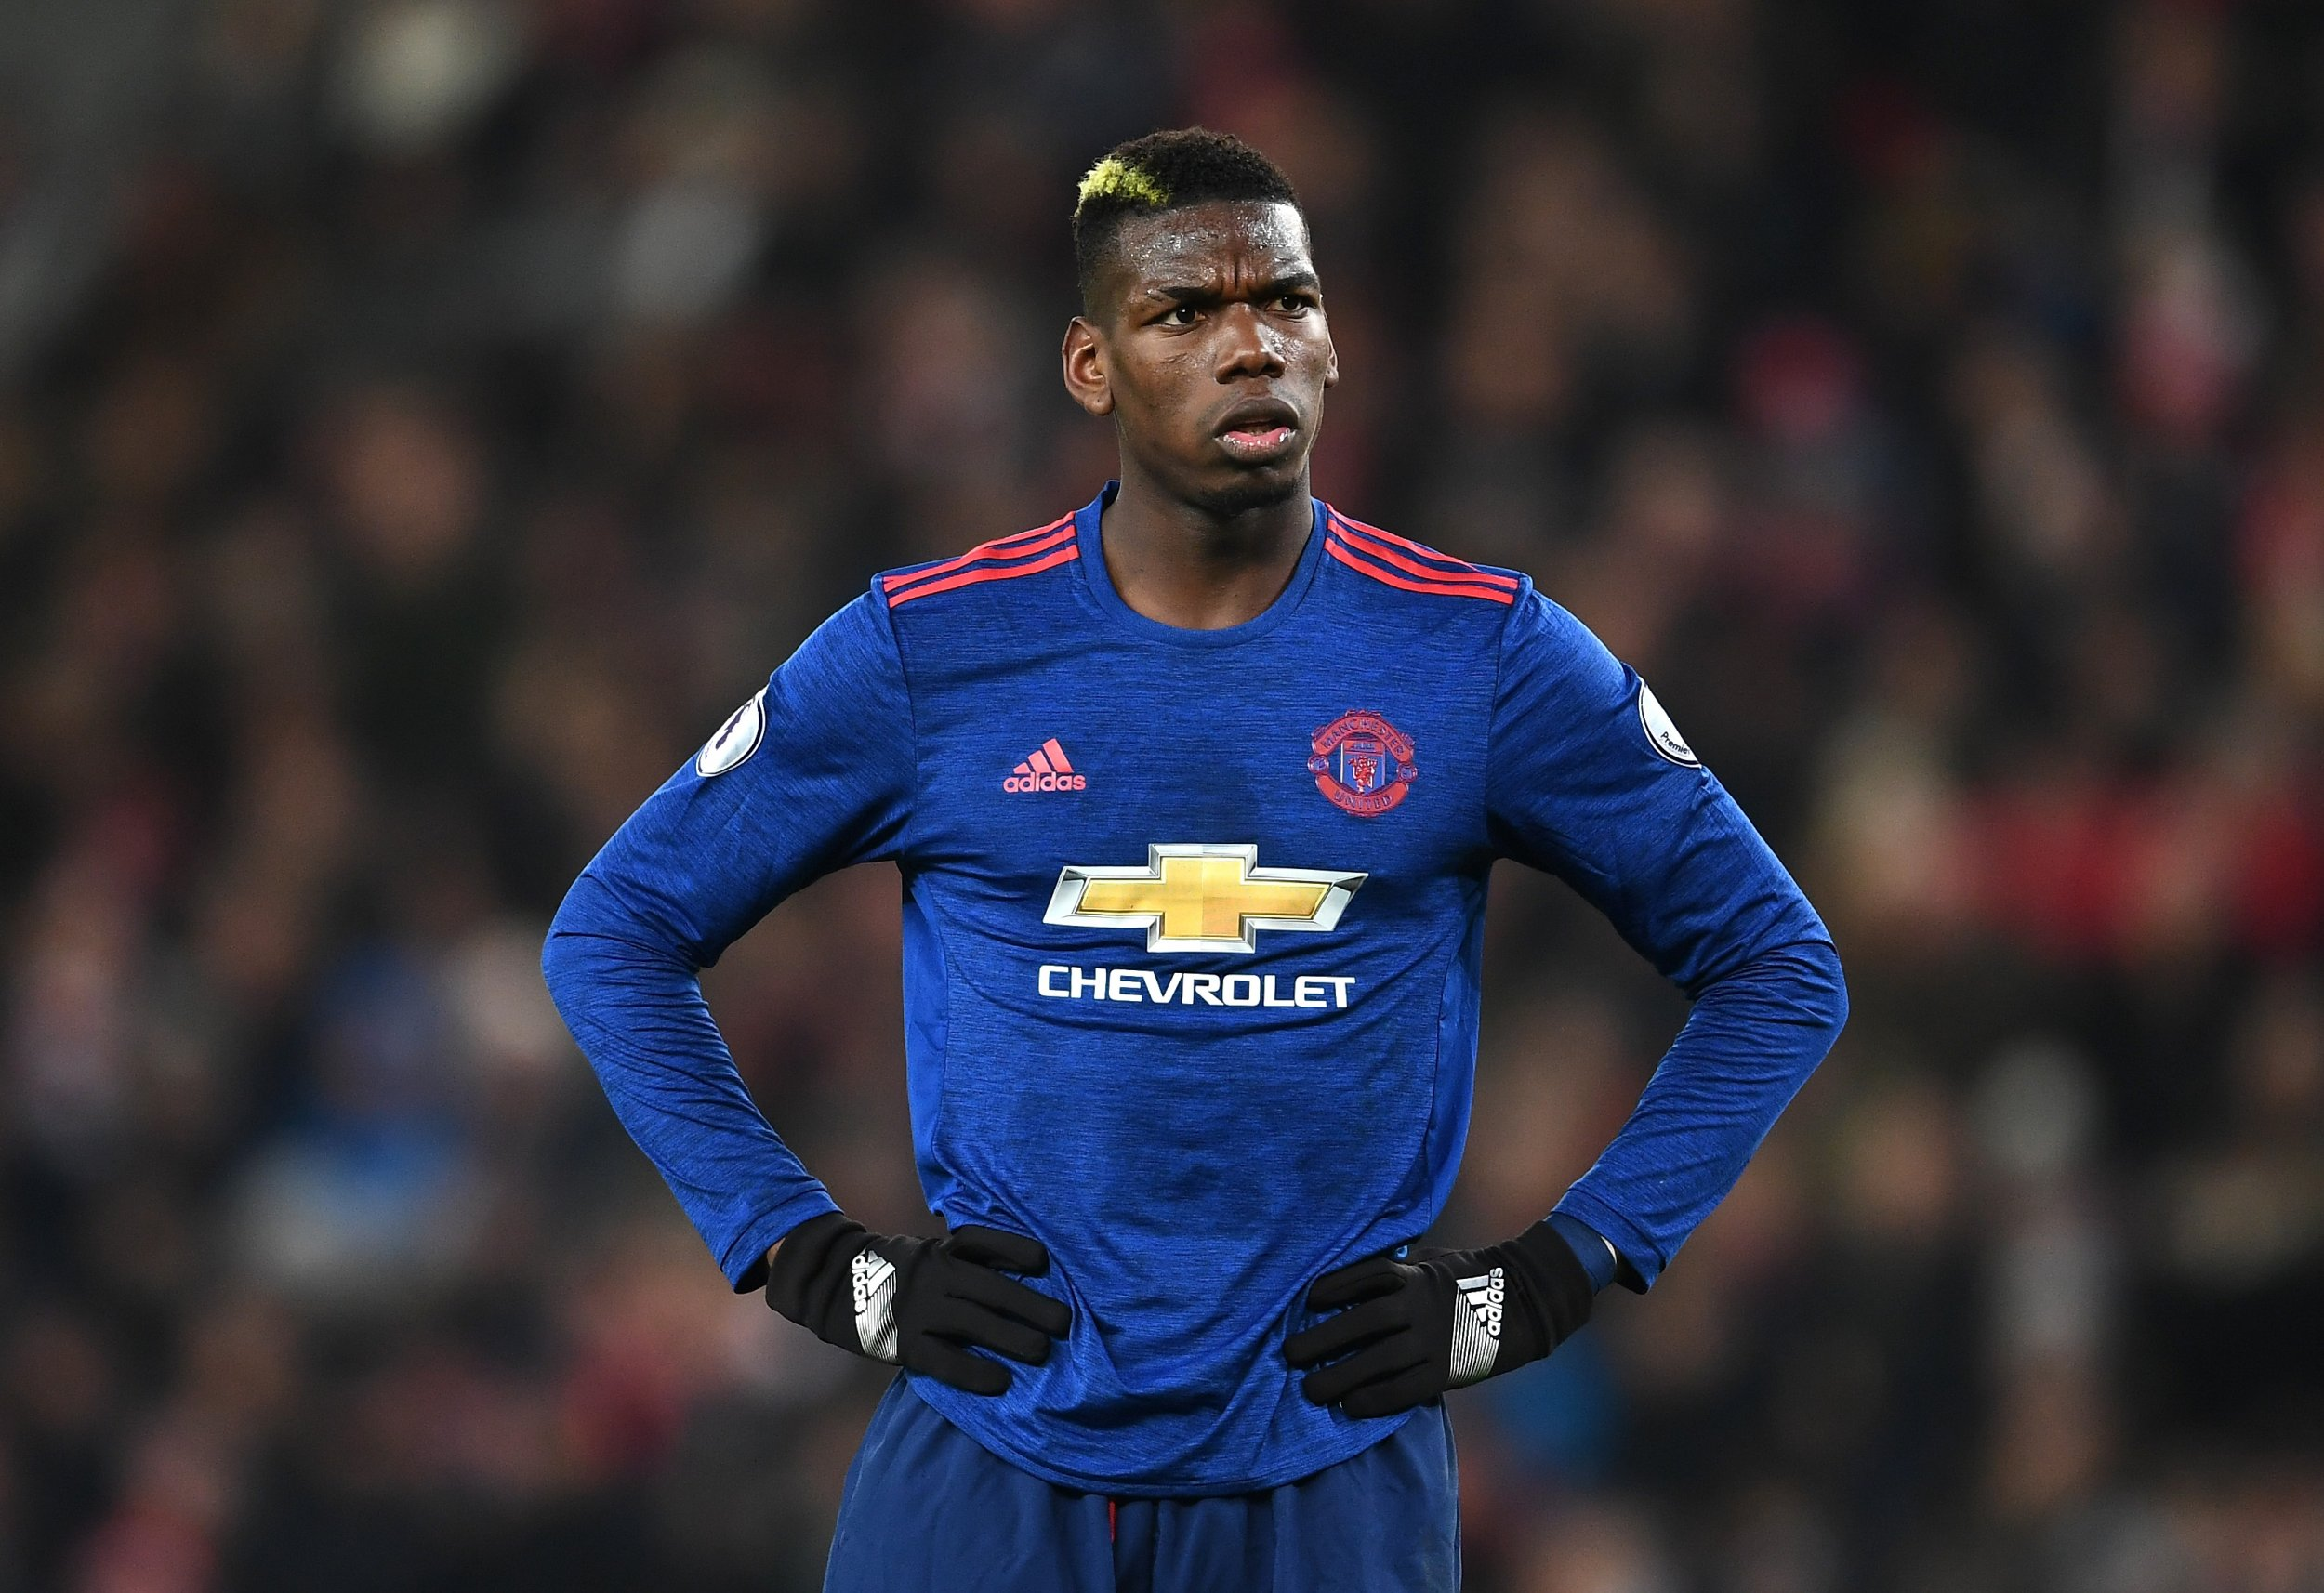 Manchester United Paul Pogba Given Warning By Premier